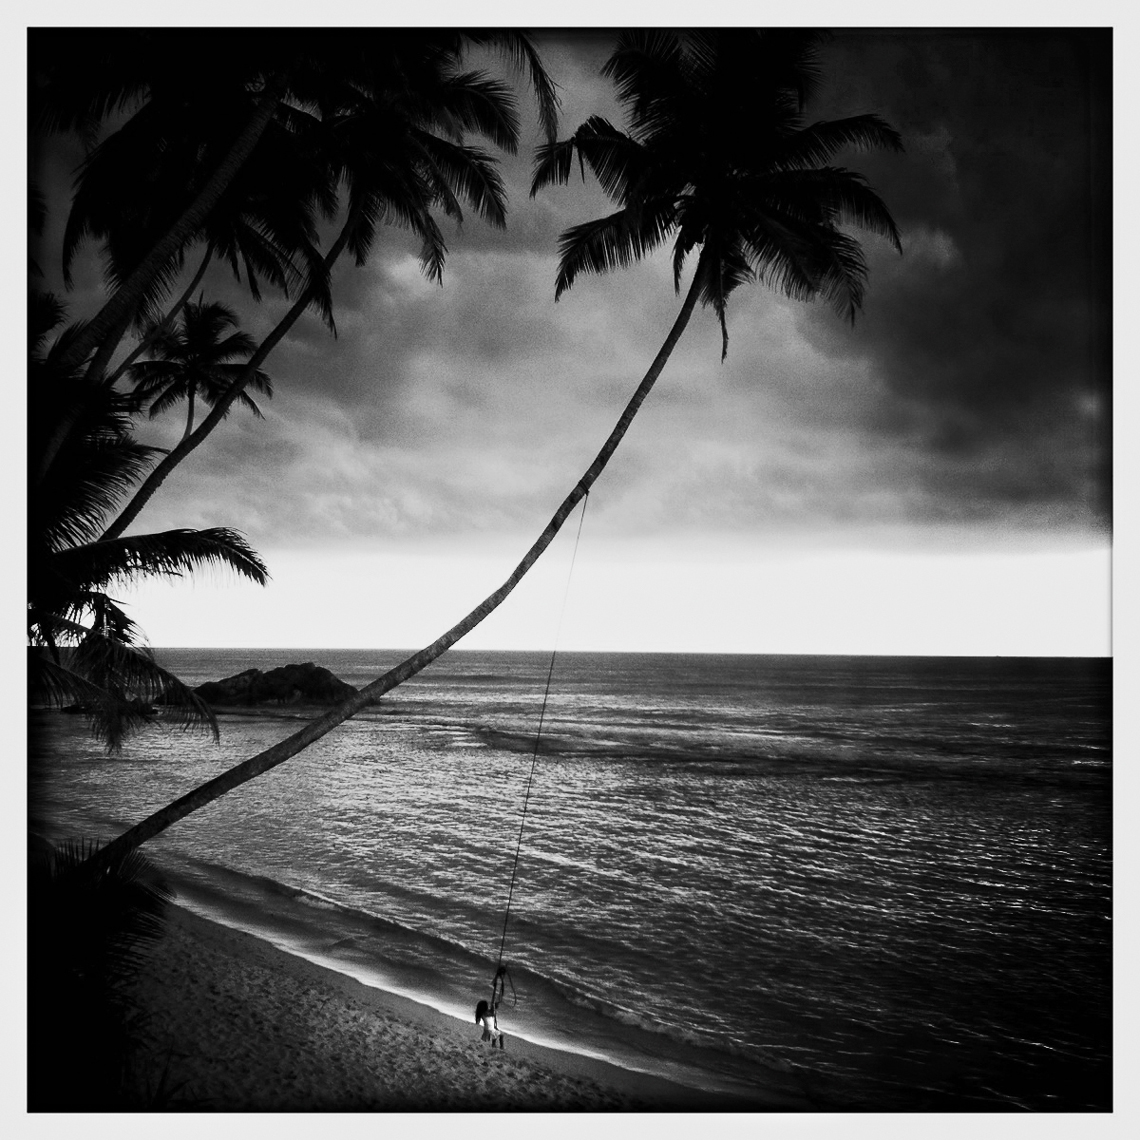 Jon Wyatt Photography - girl on swing on beach in Sri Lanka. Hipstamatic